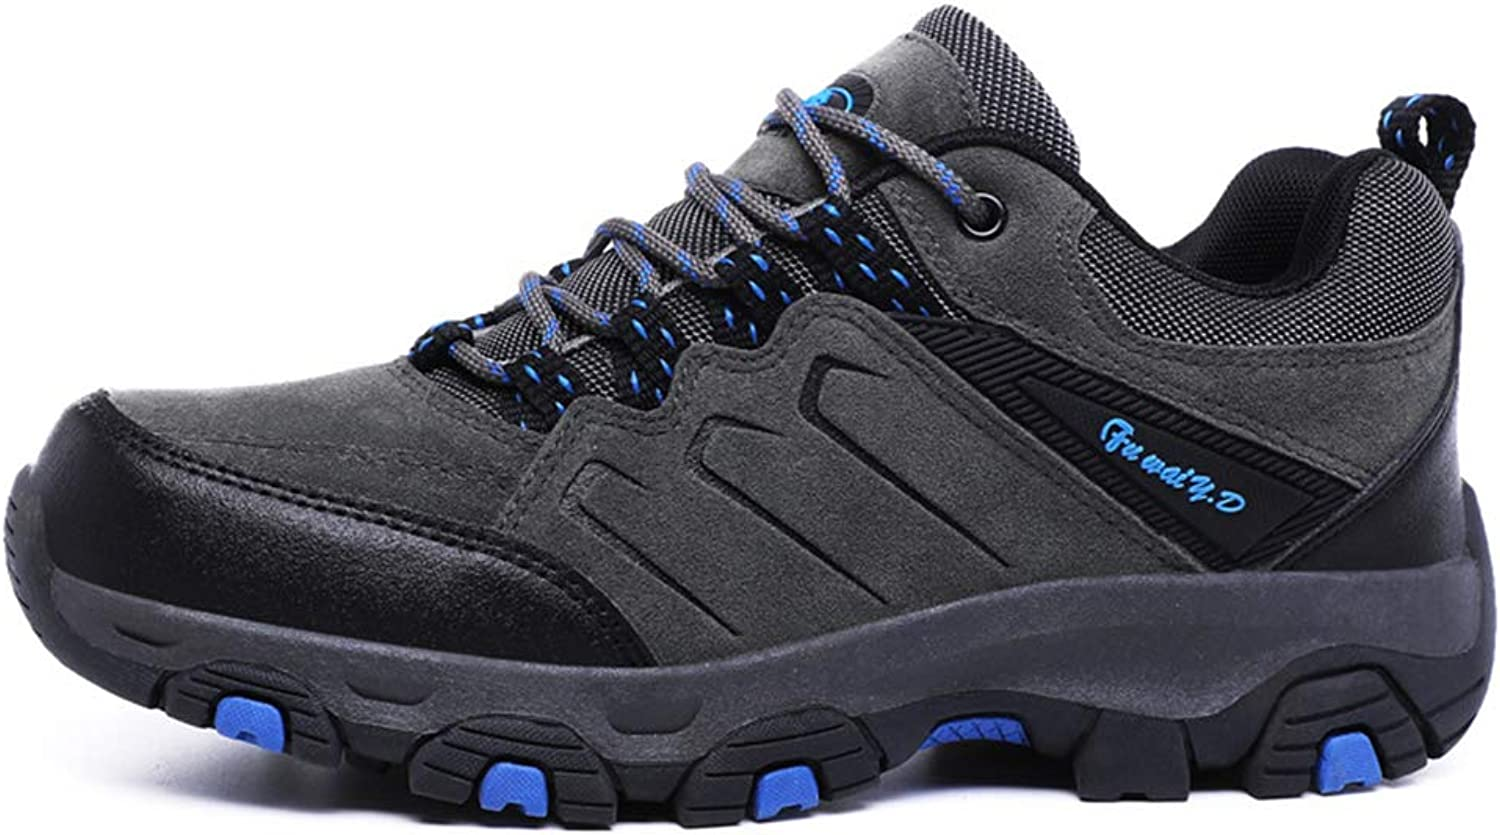 Men's Hiking shoes Fall Winter New Casual Tourism shoes Non Slip Wear-Resistant Outdoor Camping shoes,B,43